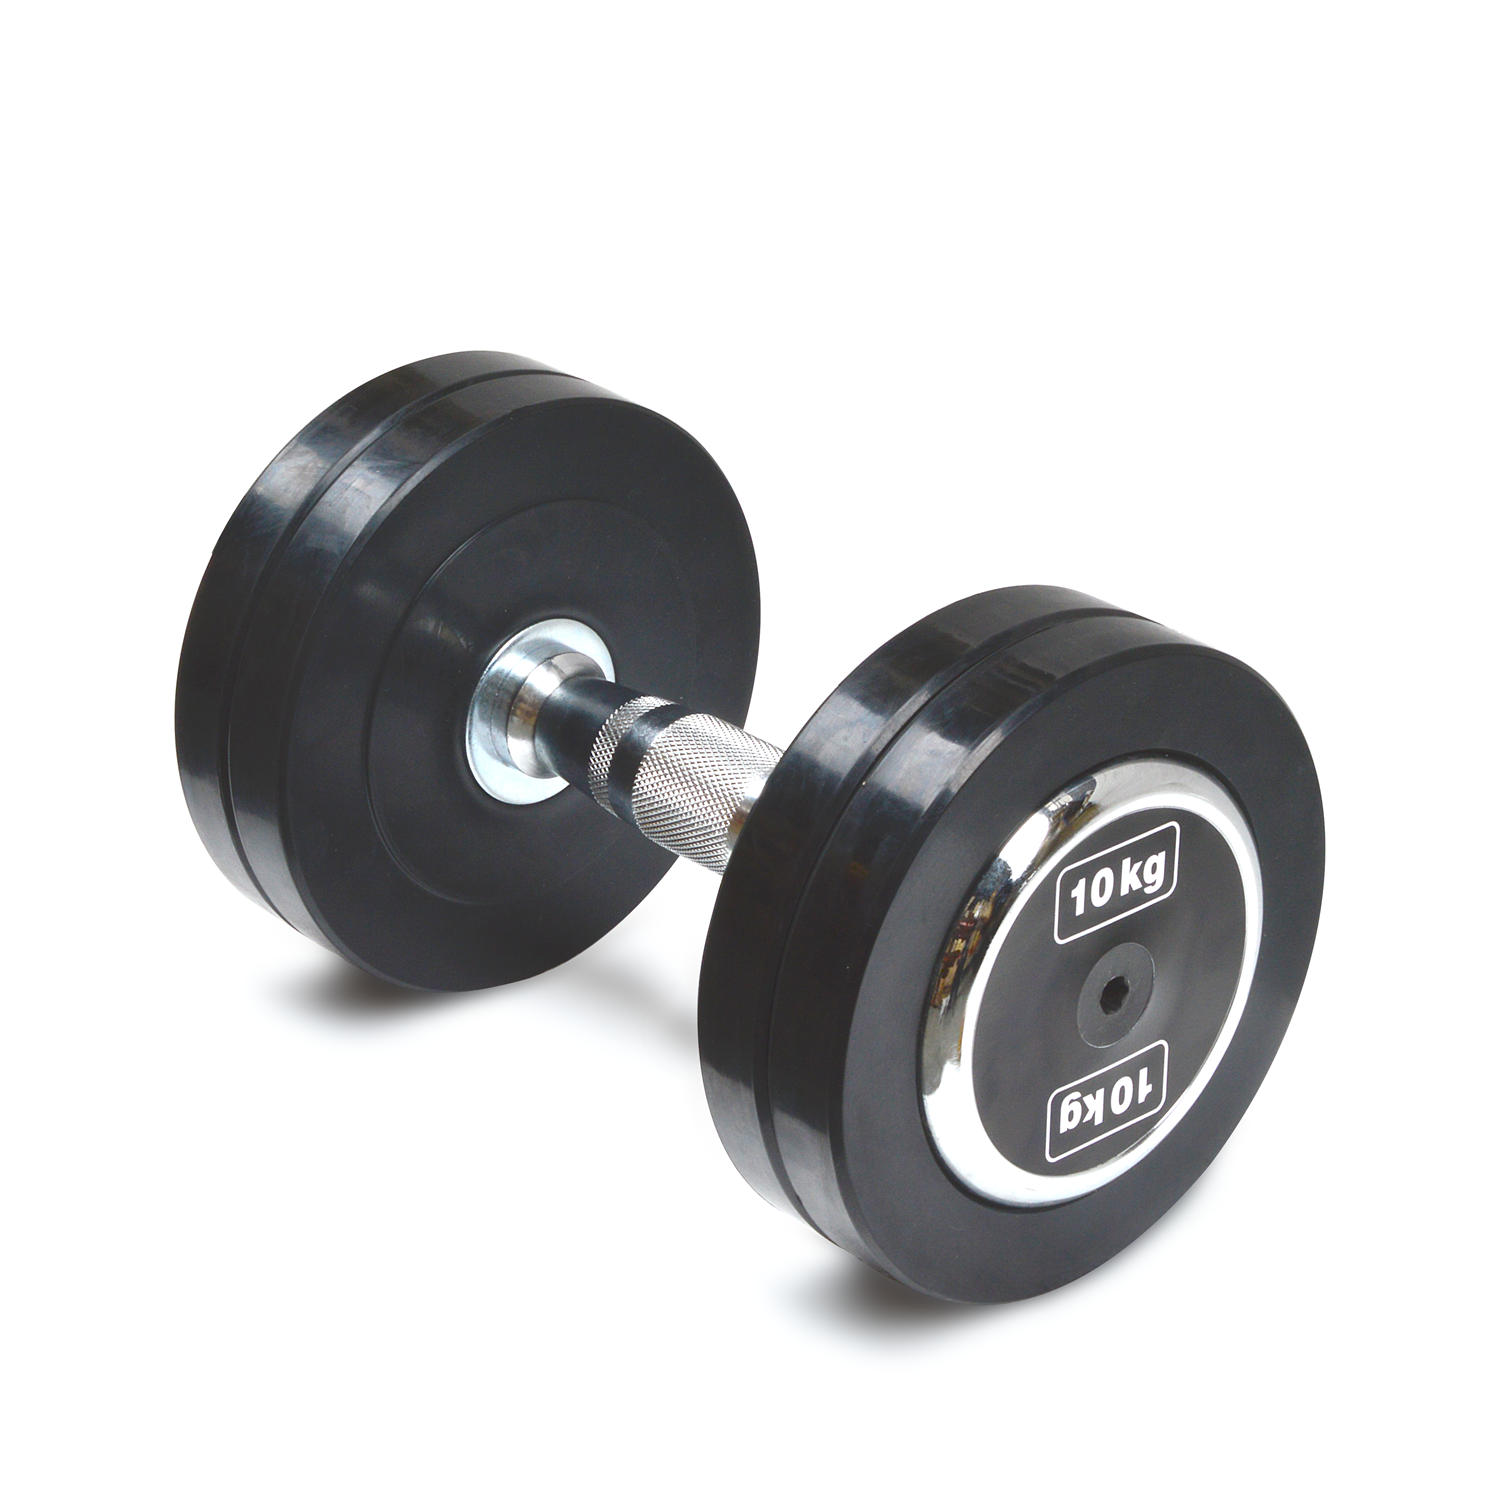 Body-Solid Pro Style Rubber Dumbells - 10 kg